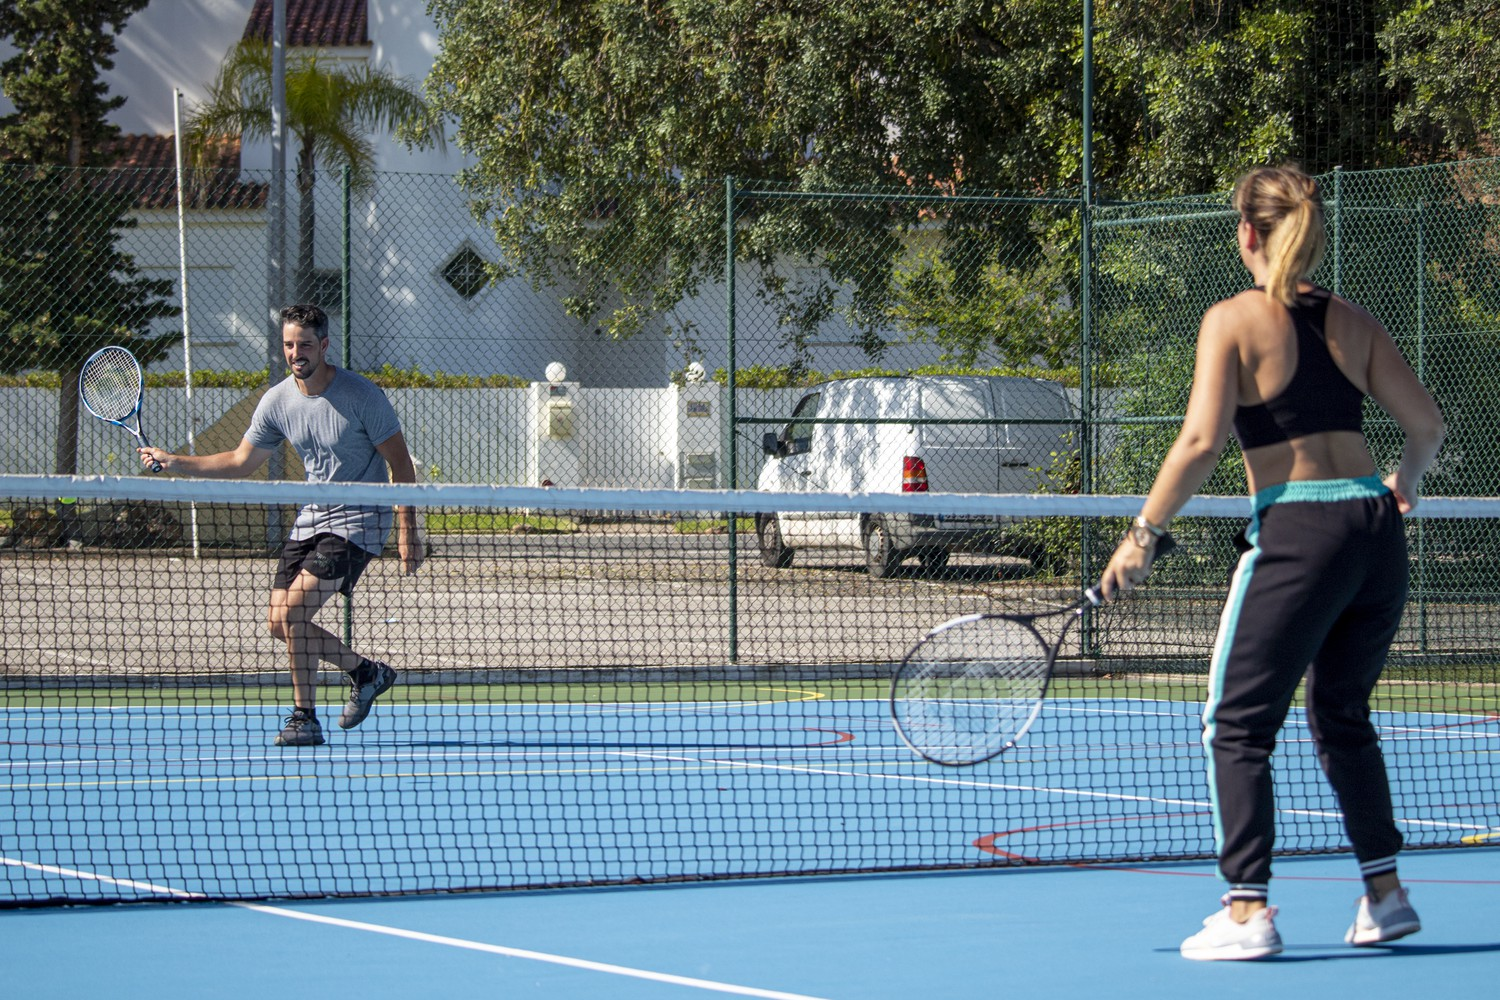 A couple have a good time playing tennis.